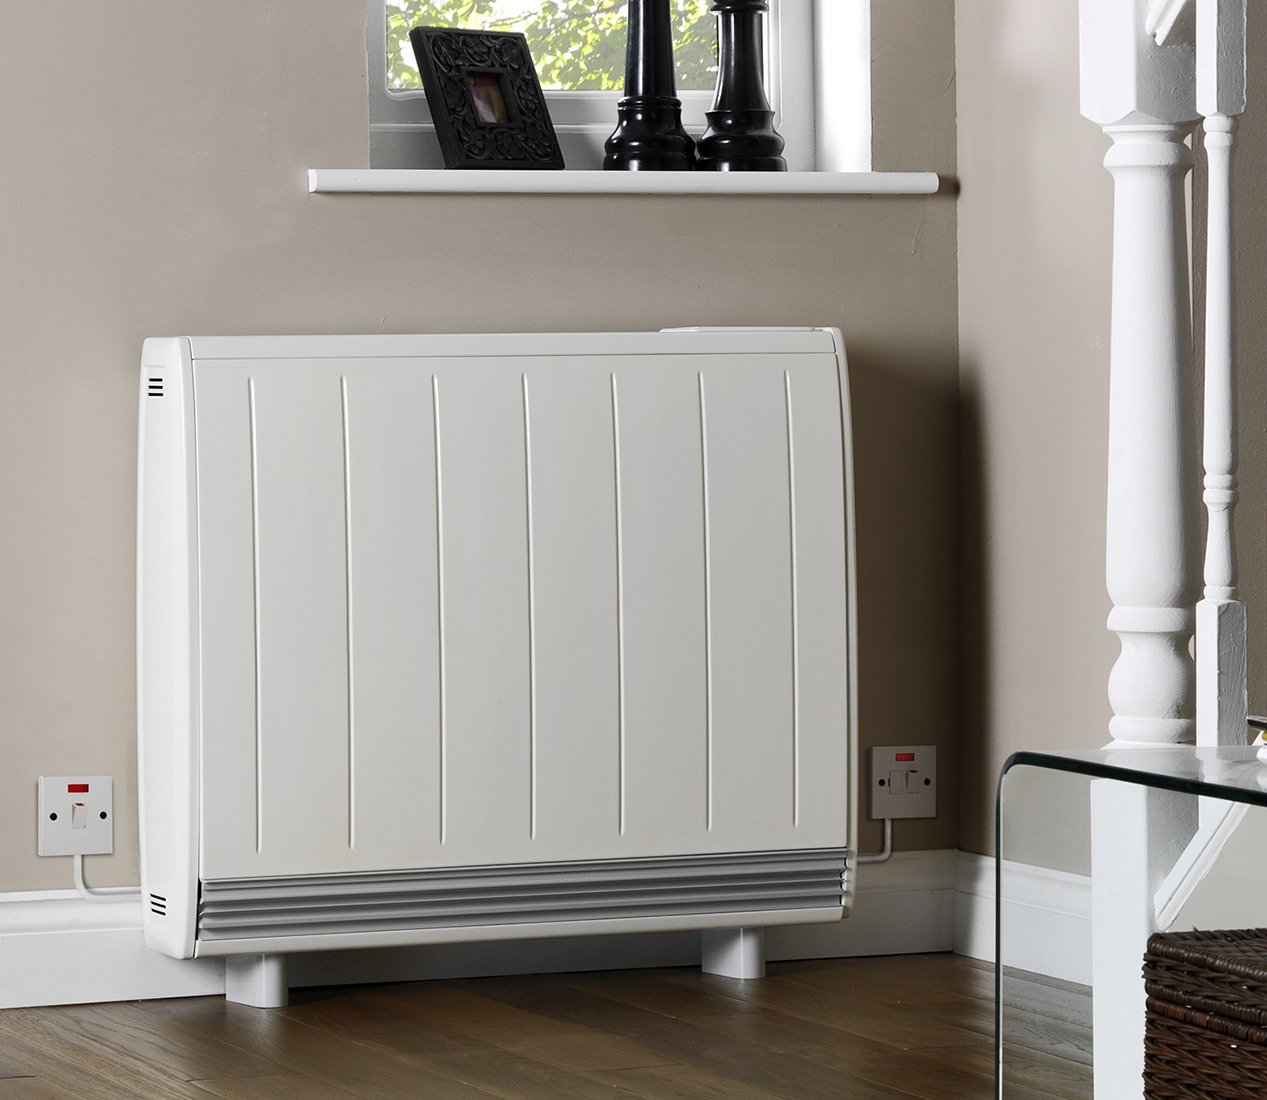 Home heaters storage heaters dimplex combined - Dimplex Quantum Qm070 Eco Fan Assisted Automatic Storage Heater 700w Heats Up To 7 M